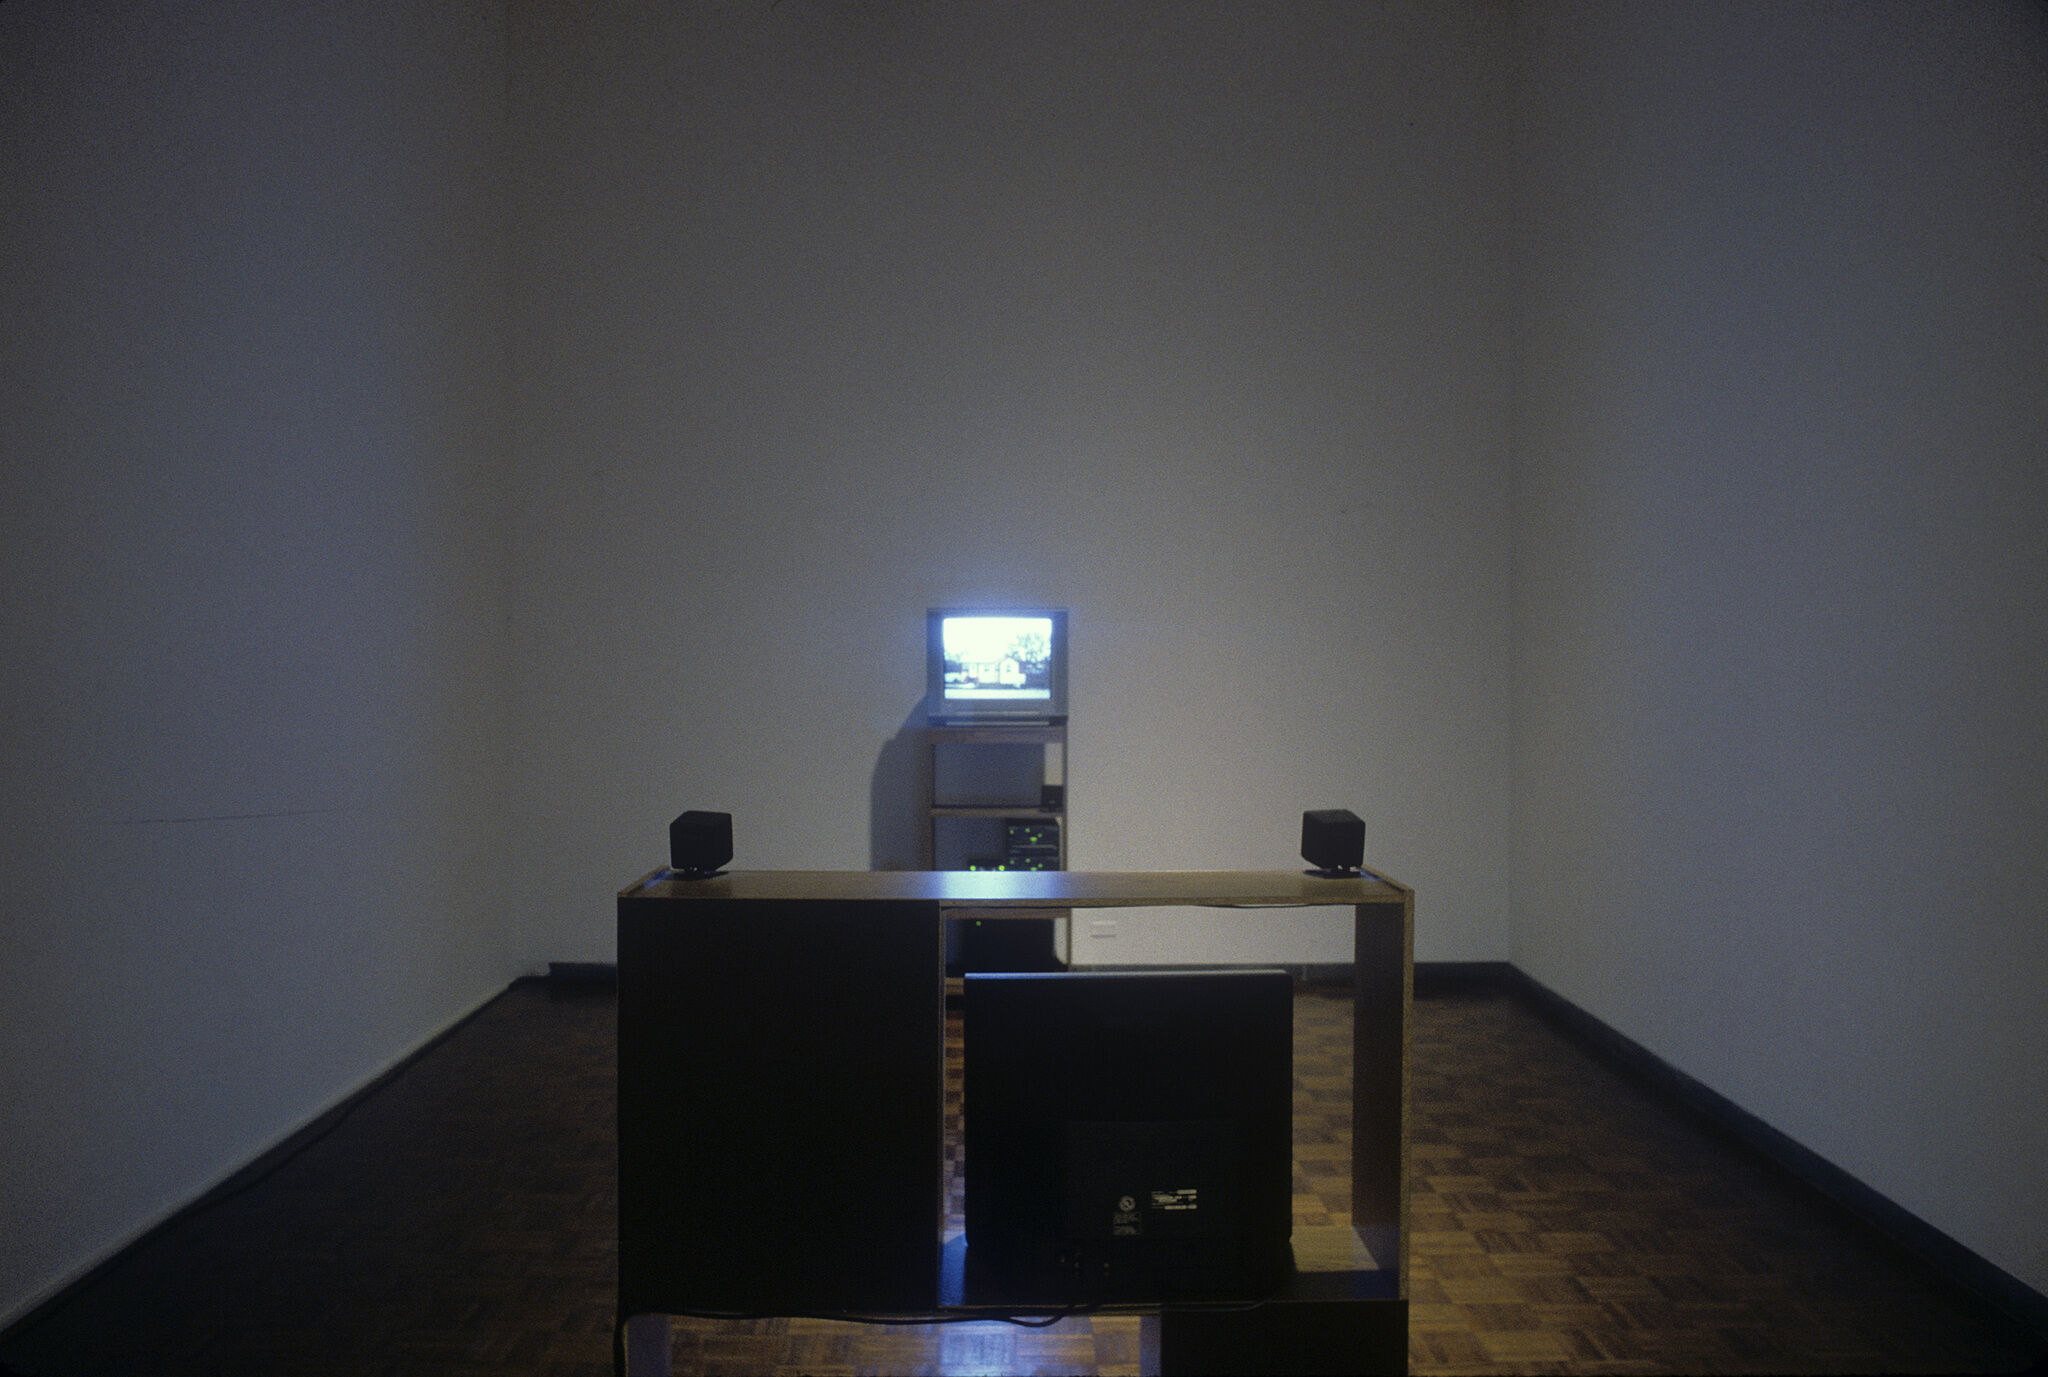 A gallery with an installation made up of a small television set with a shelf displayed in front of it.